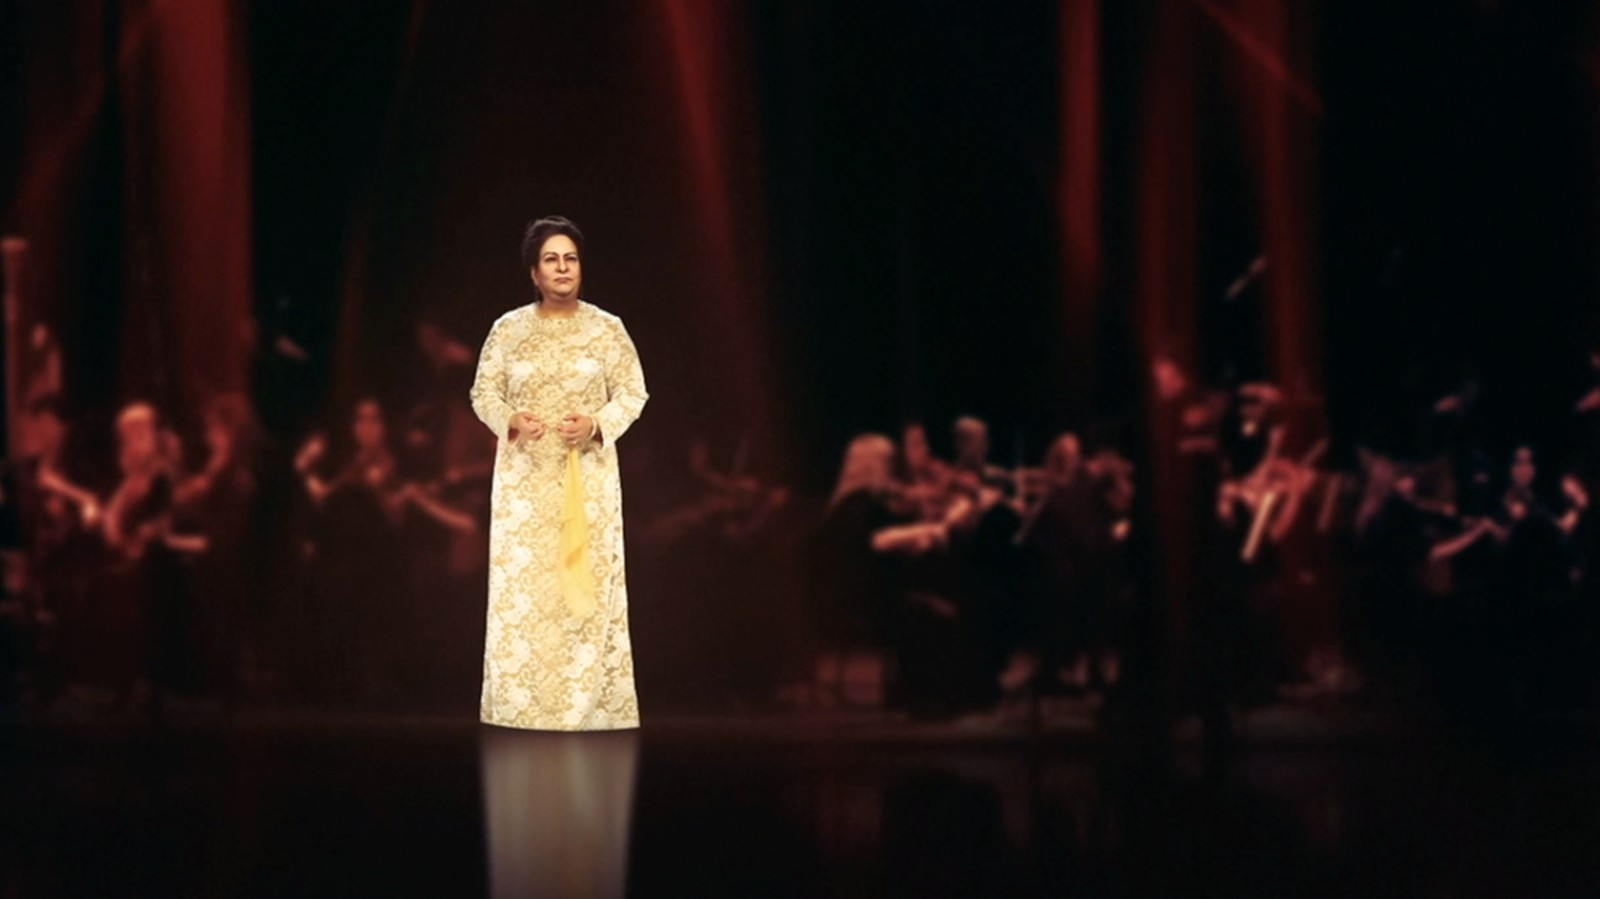 Umm Kulthum hologram to perform at Dubai Opera | Enterprise